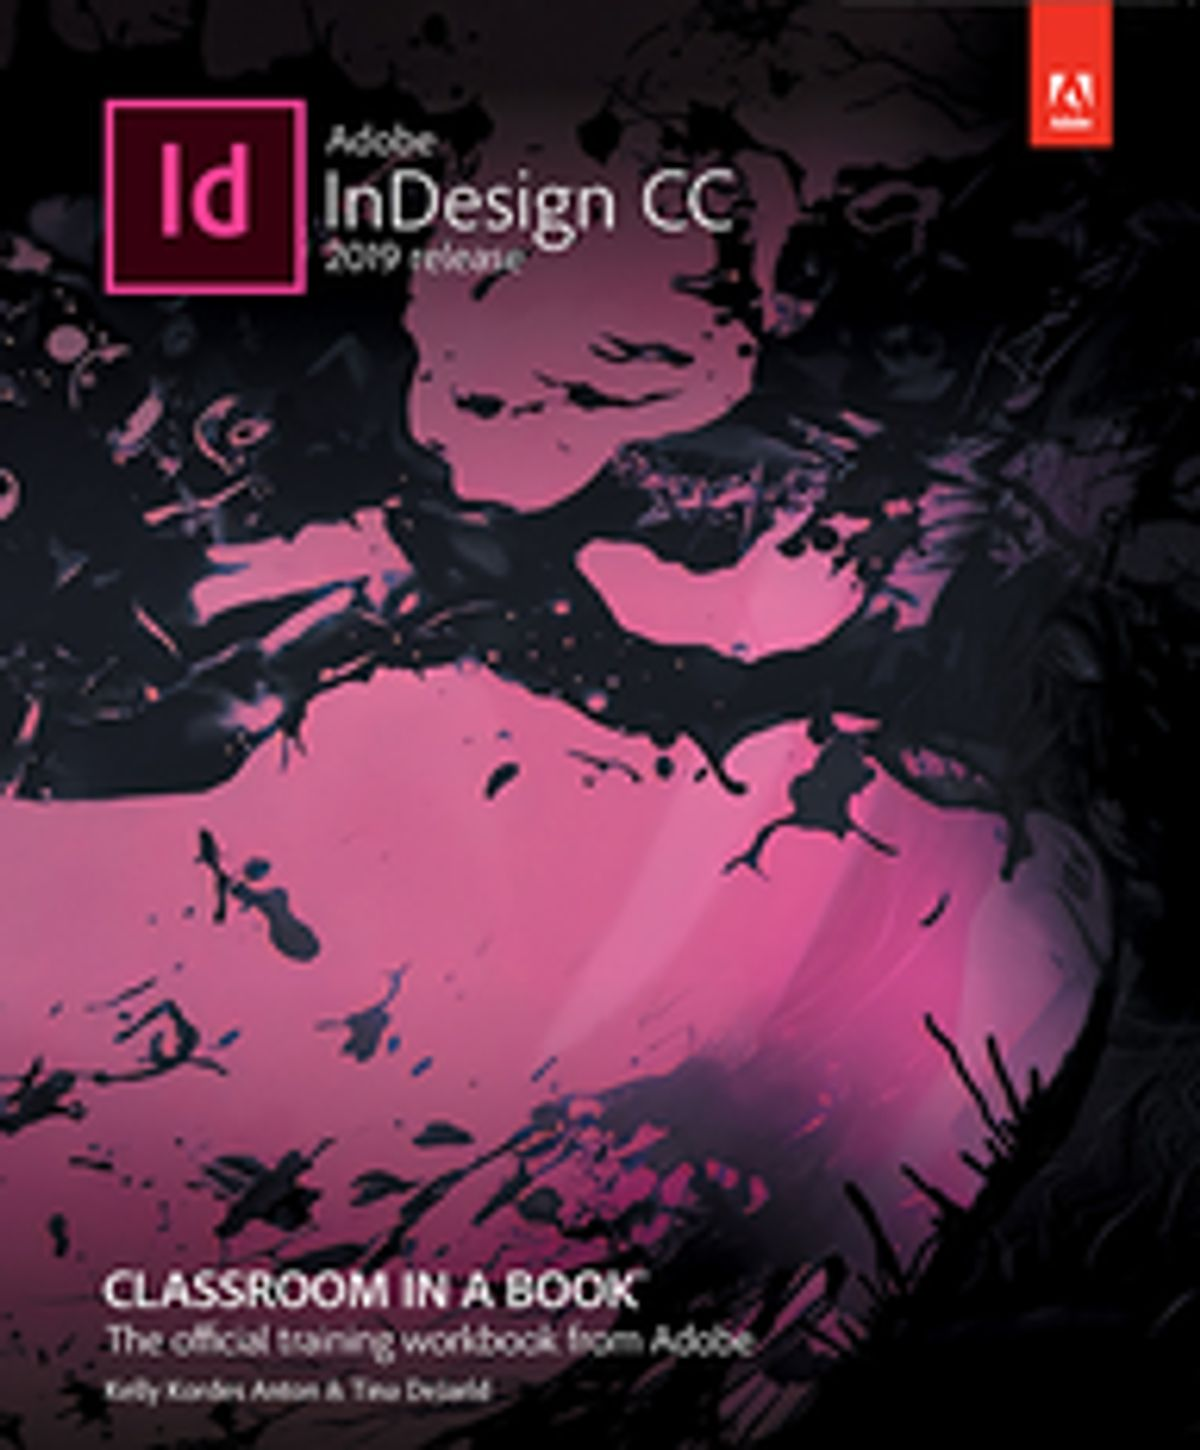 Adobe InDesign CC Full Crack